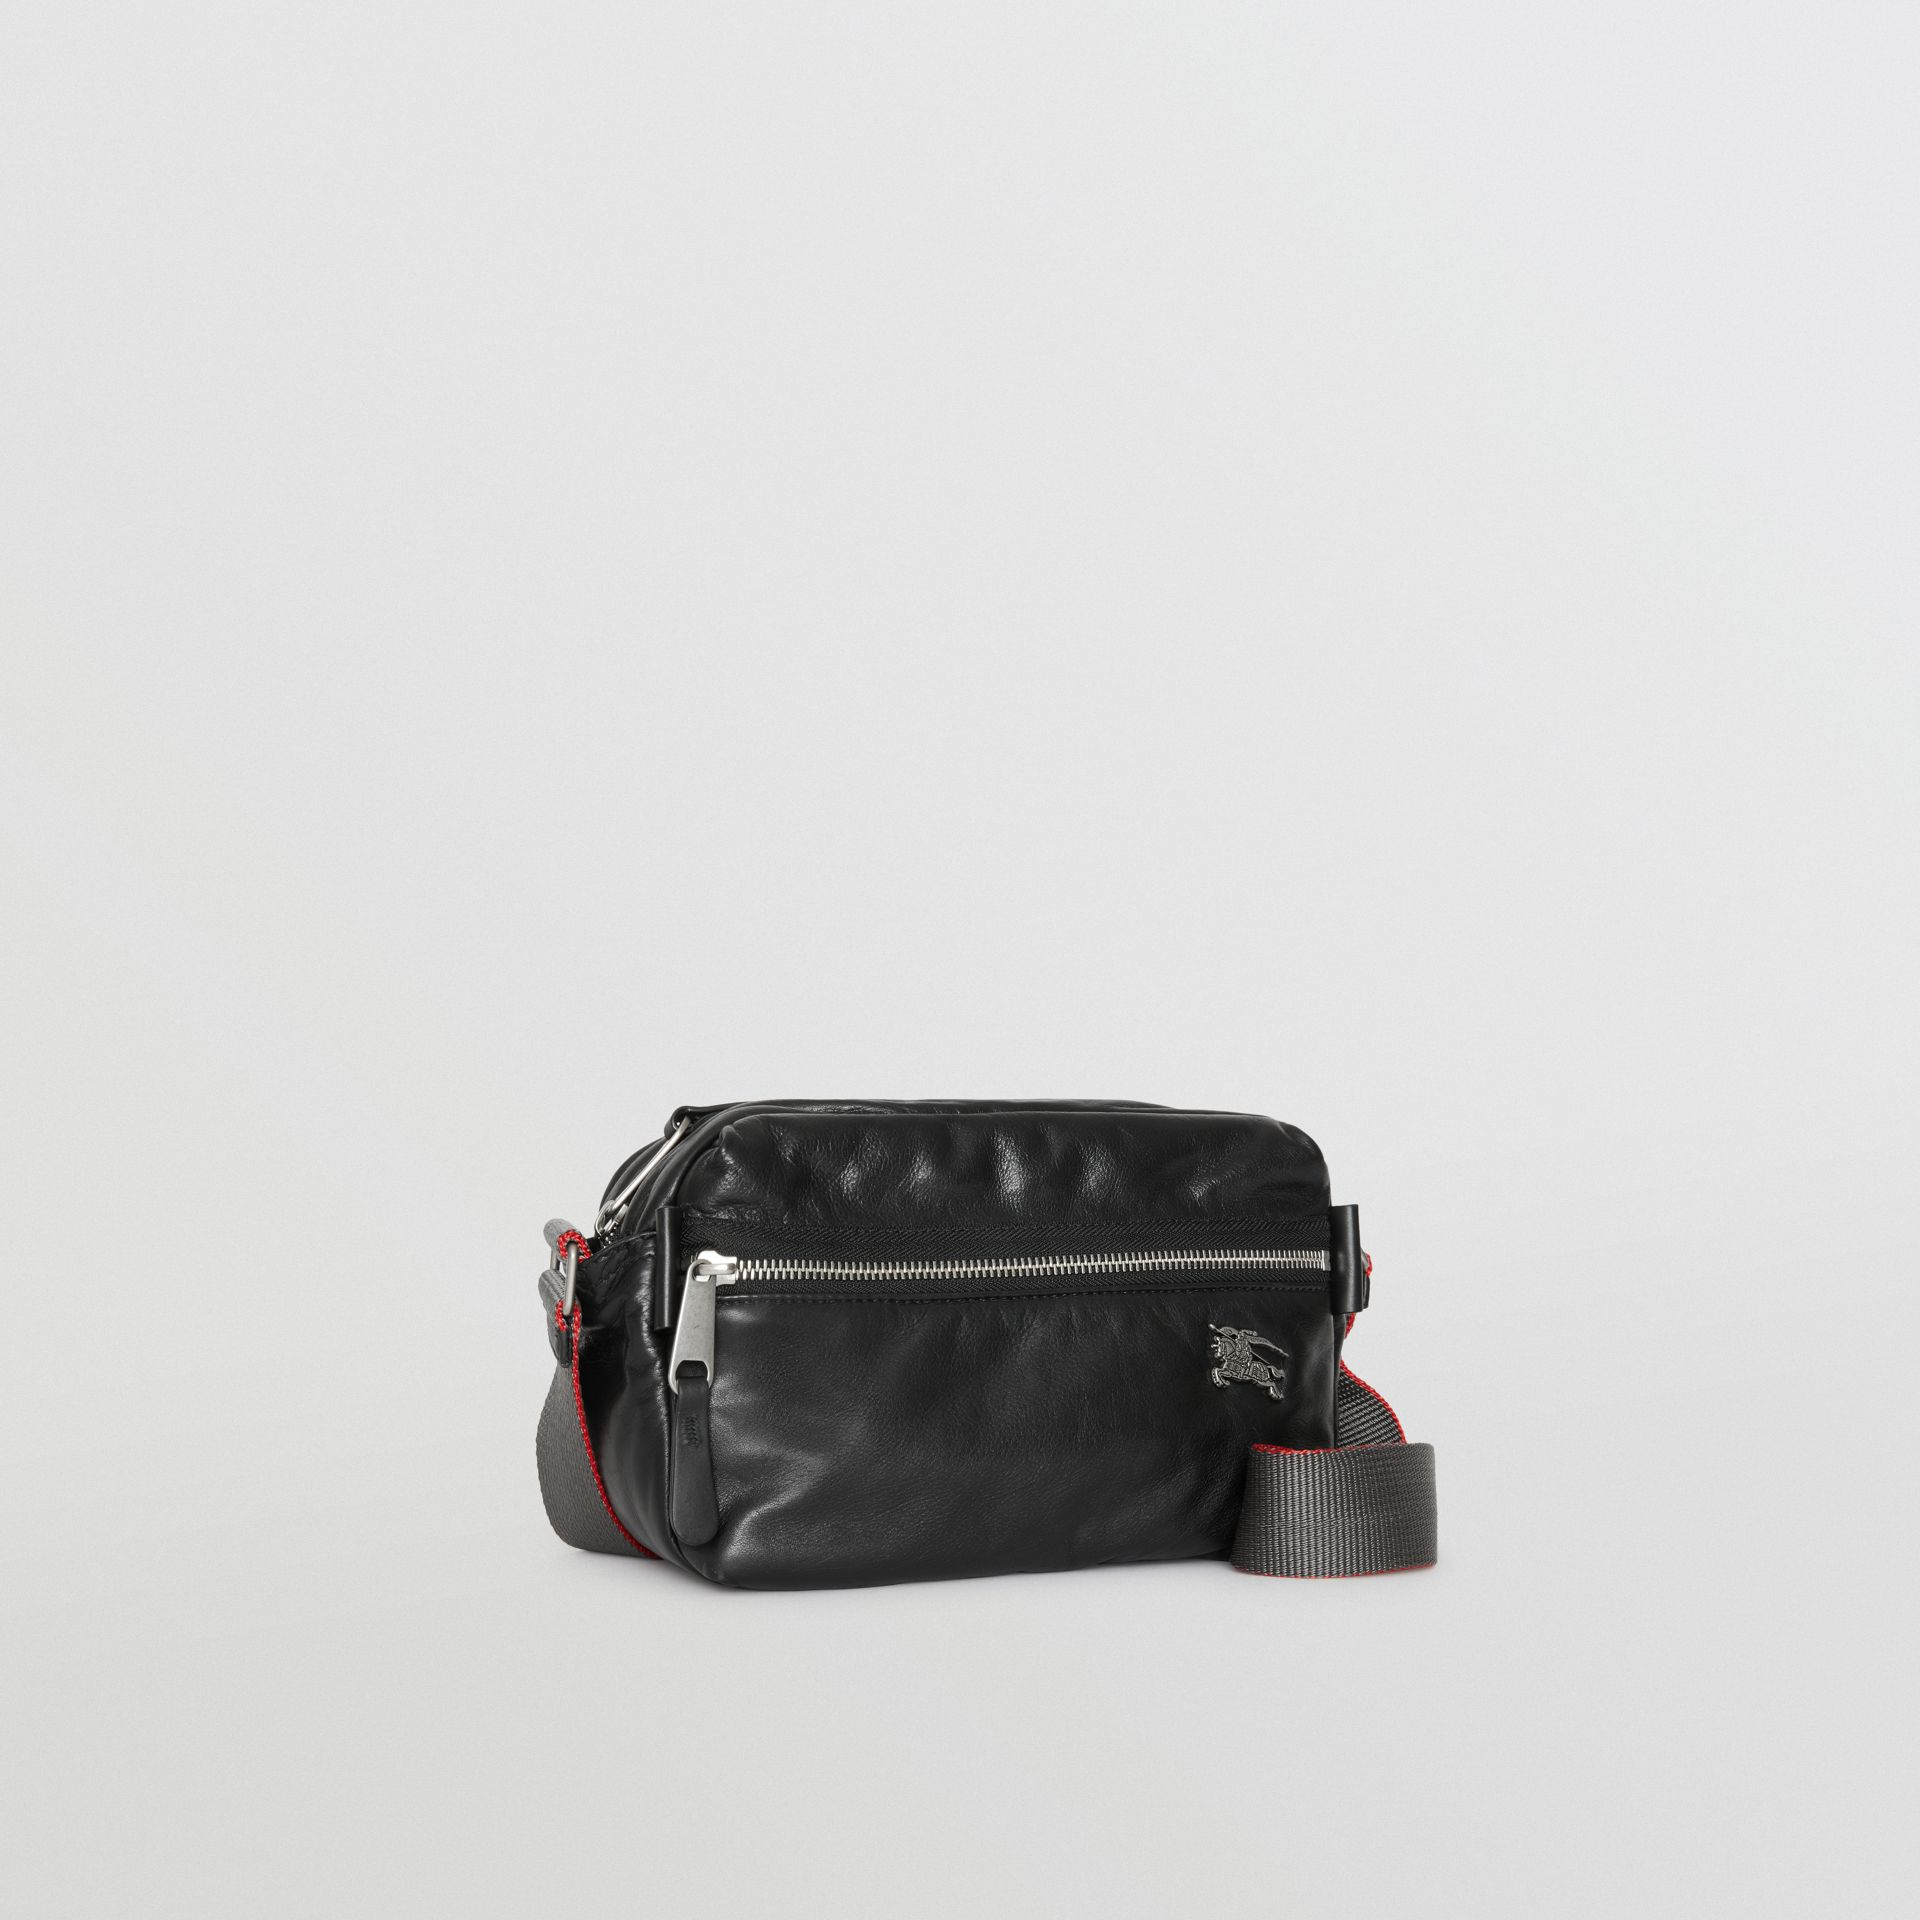 EKD Nappa Leather Crossbody Bag in Black - Men | Burberry - gallery image 4